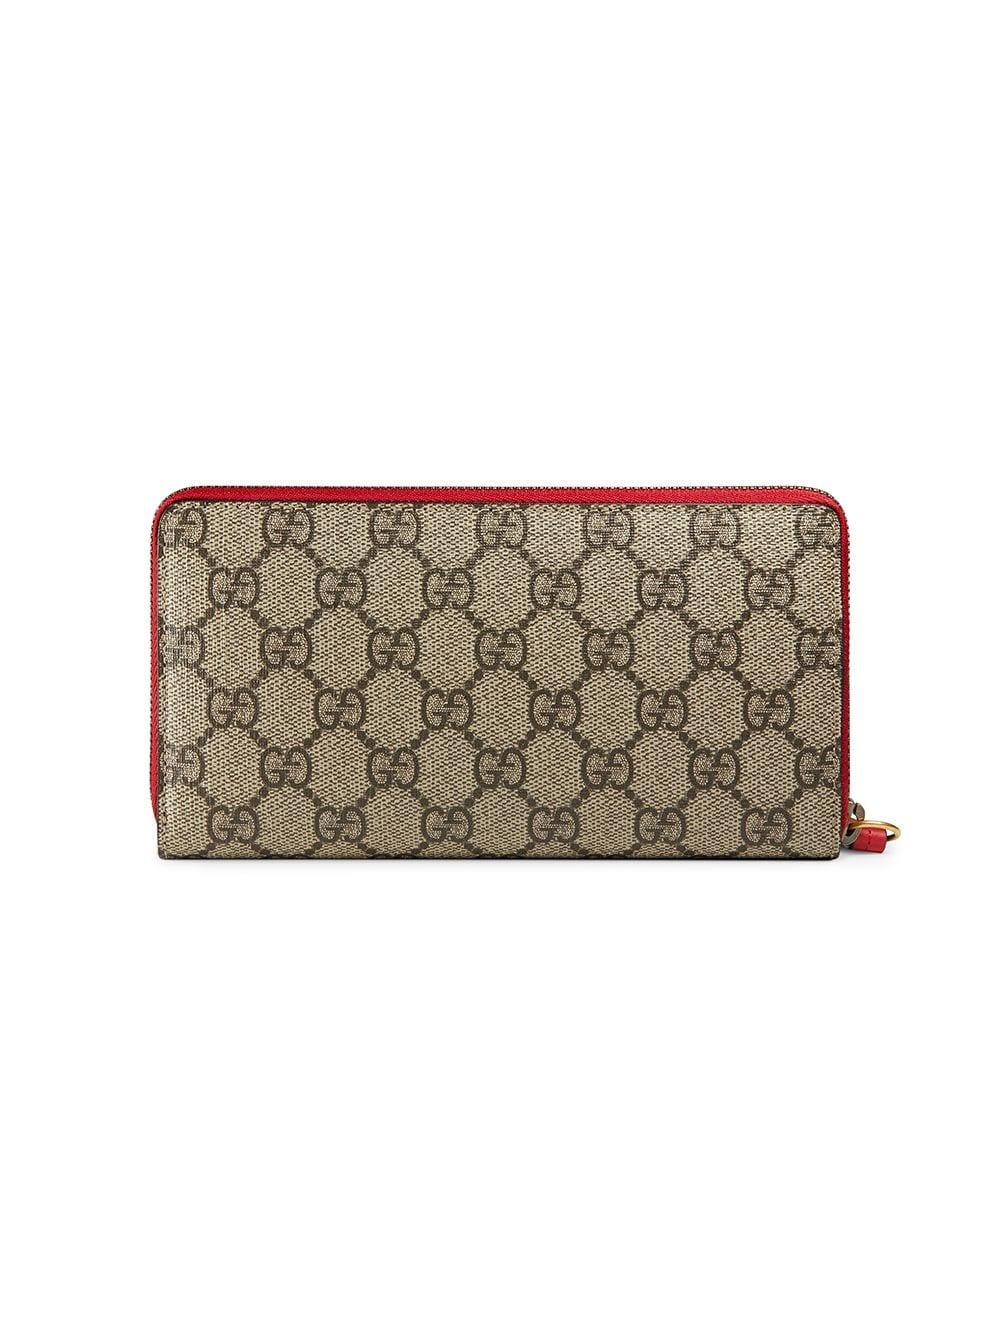 dd79e4221e29 Lyst - Gucci GG Supreme Zip Around Wallet With Cherries in Brown